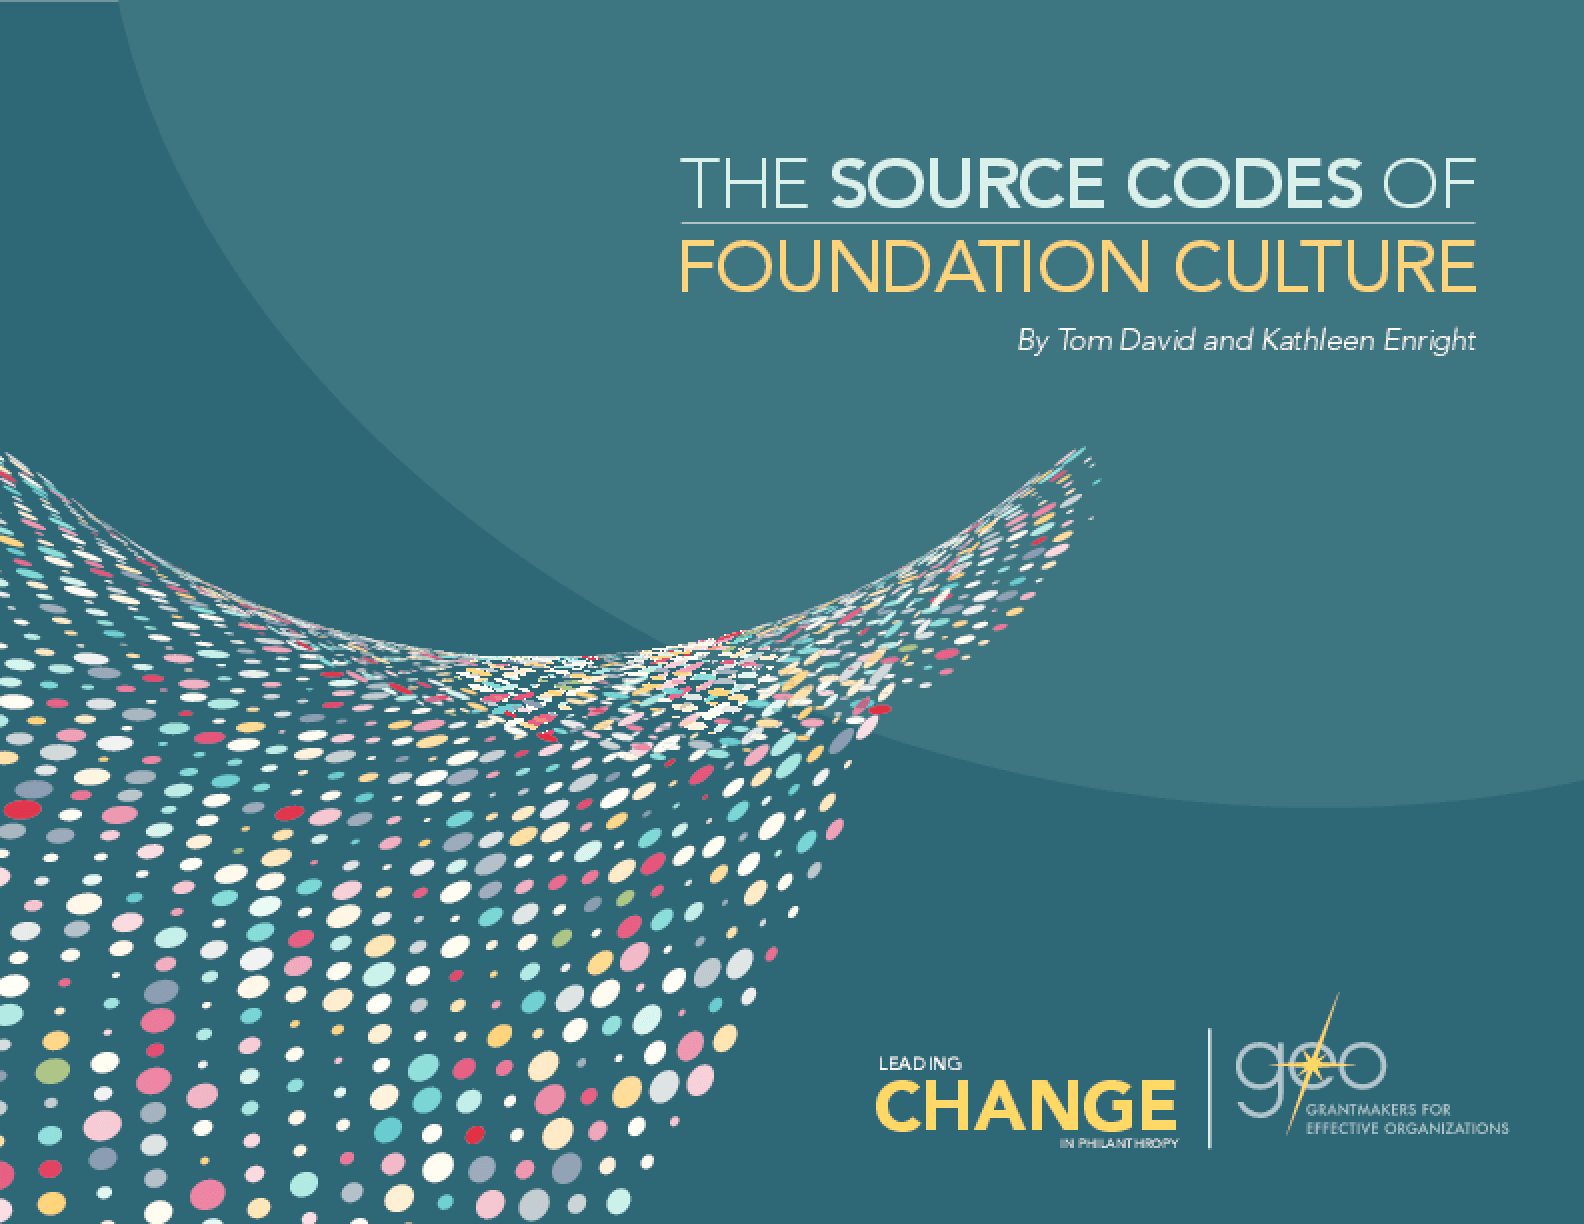 The Source Codes of Foundation Culture